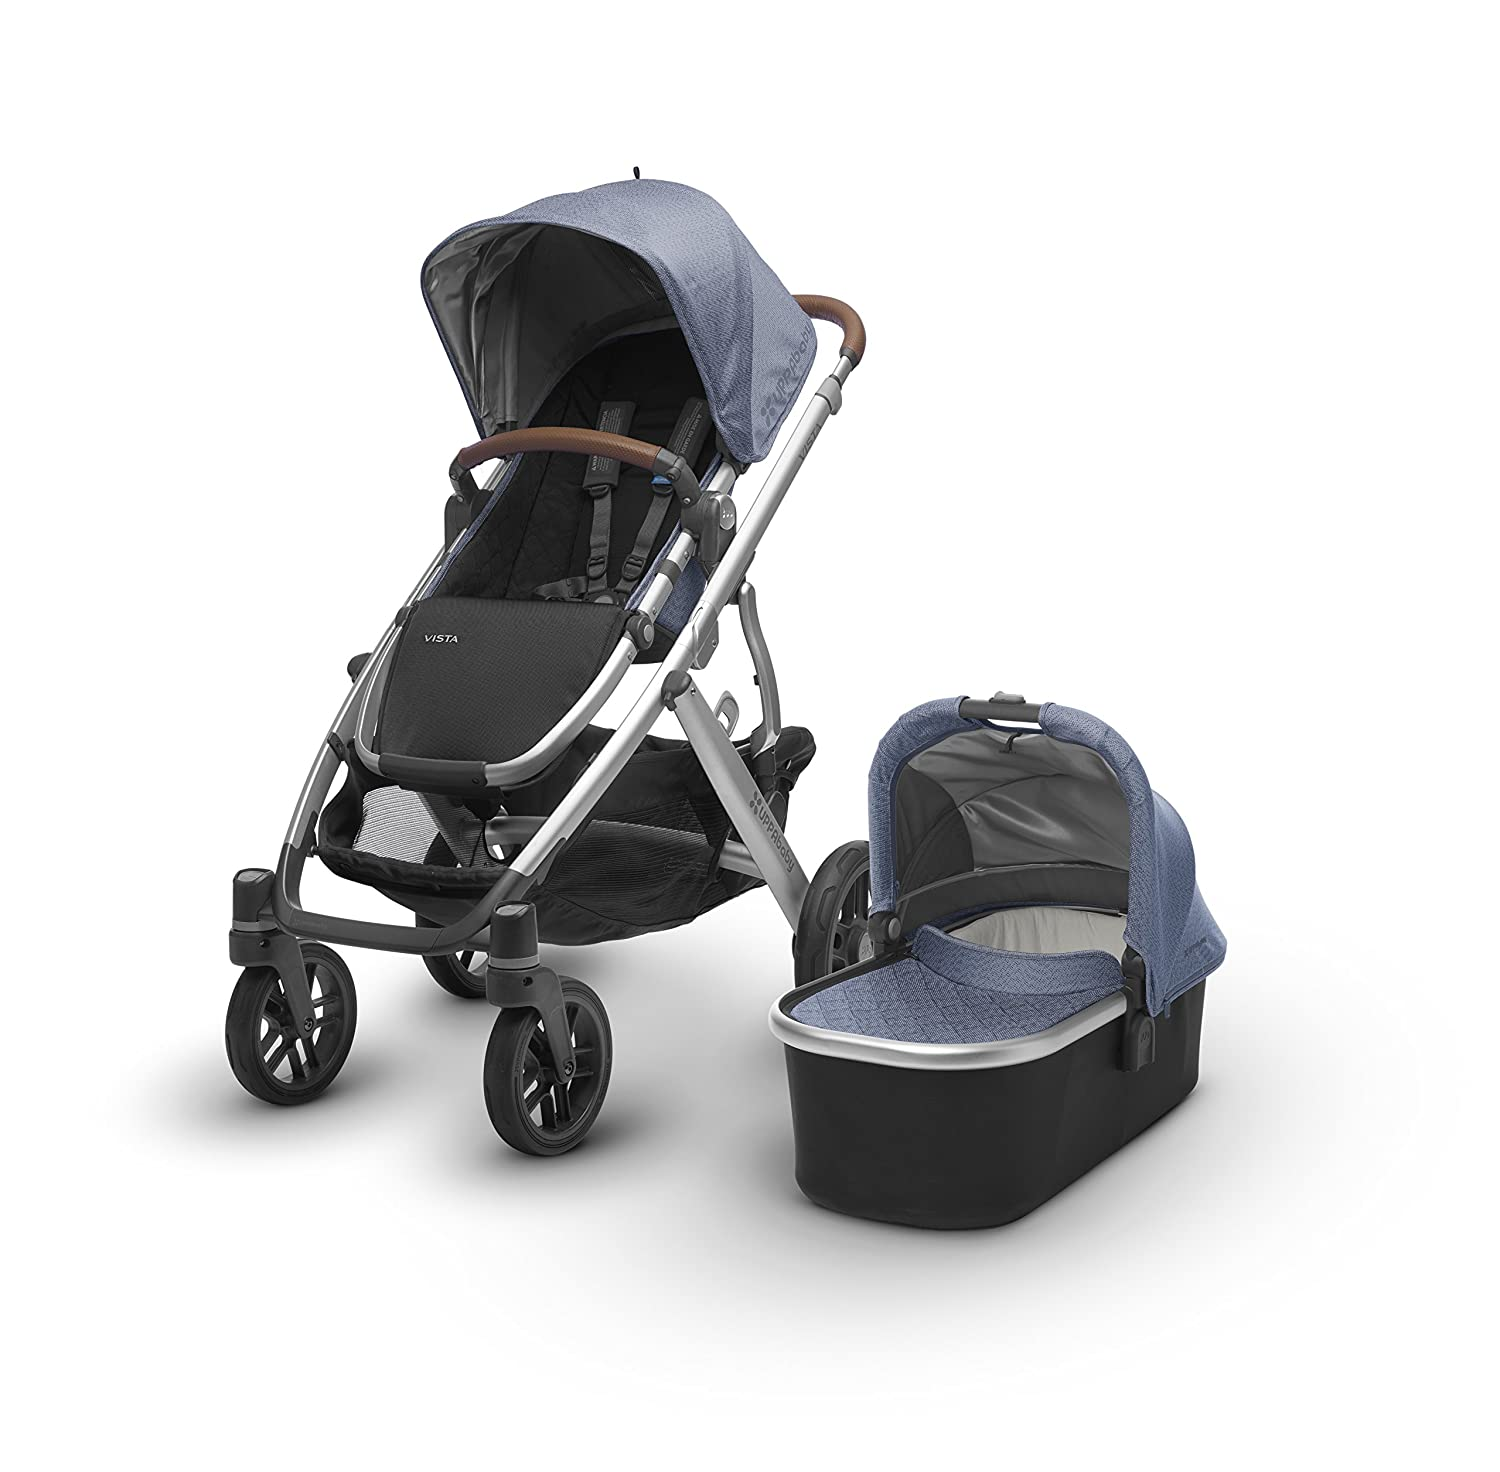 2018 UPPAbaby Vista Stroller -Henry (Blue Marl/Silver/Saddle Leather) 81Uz0Xu8K8L